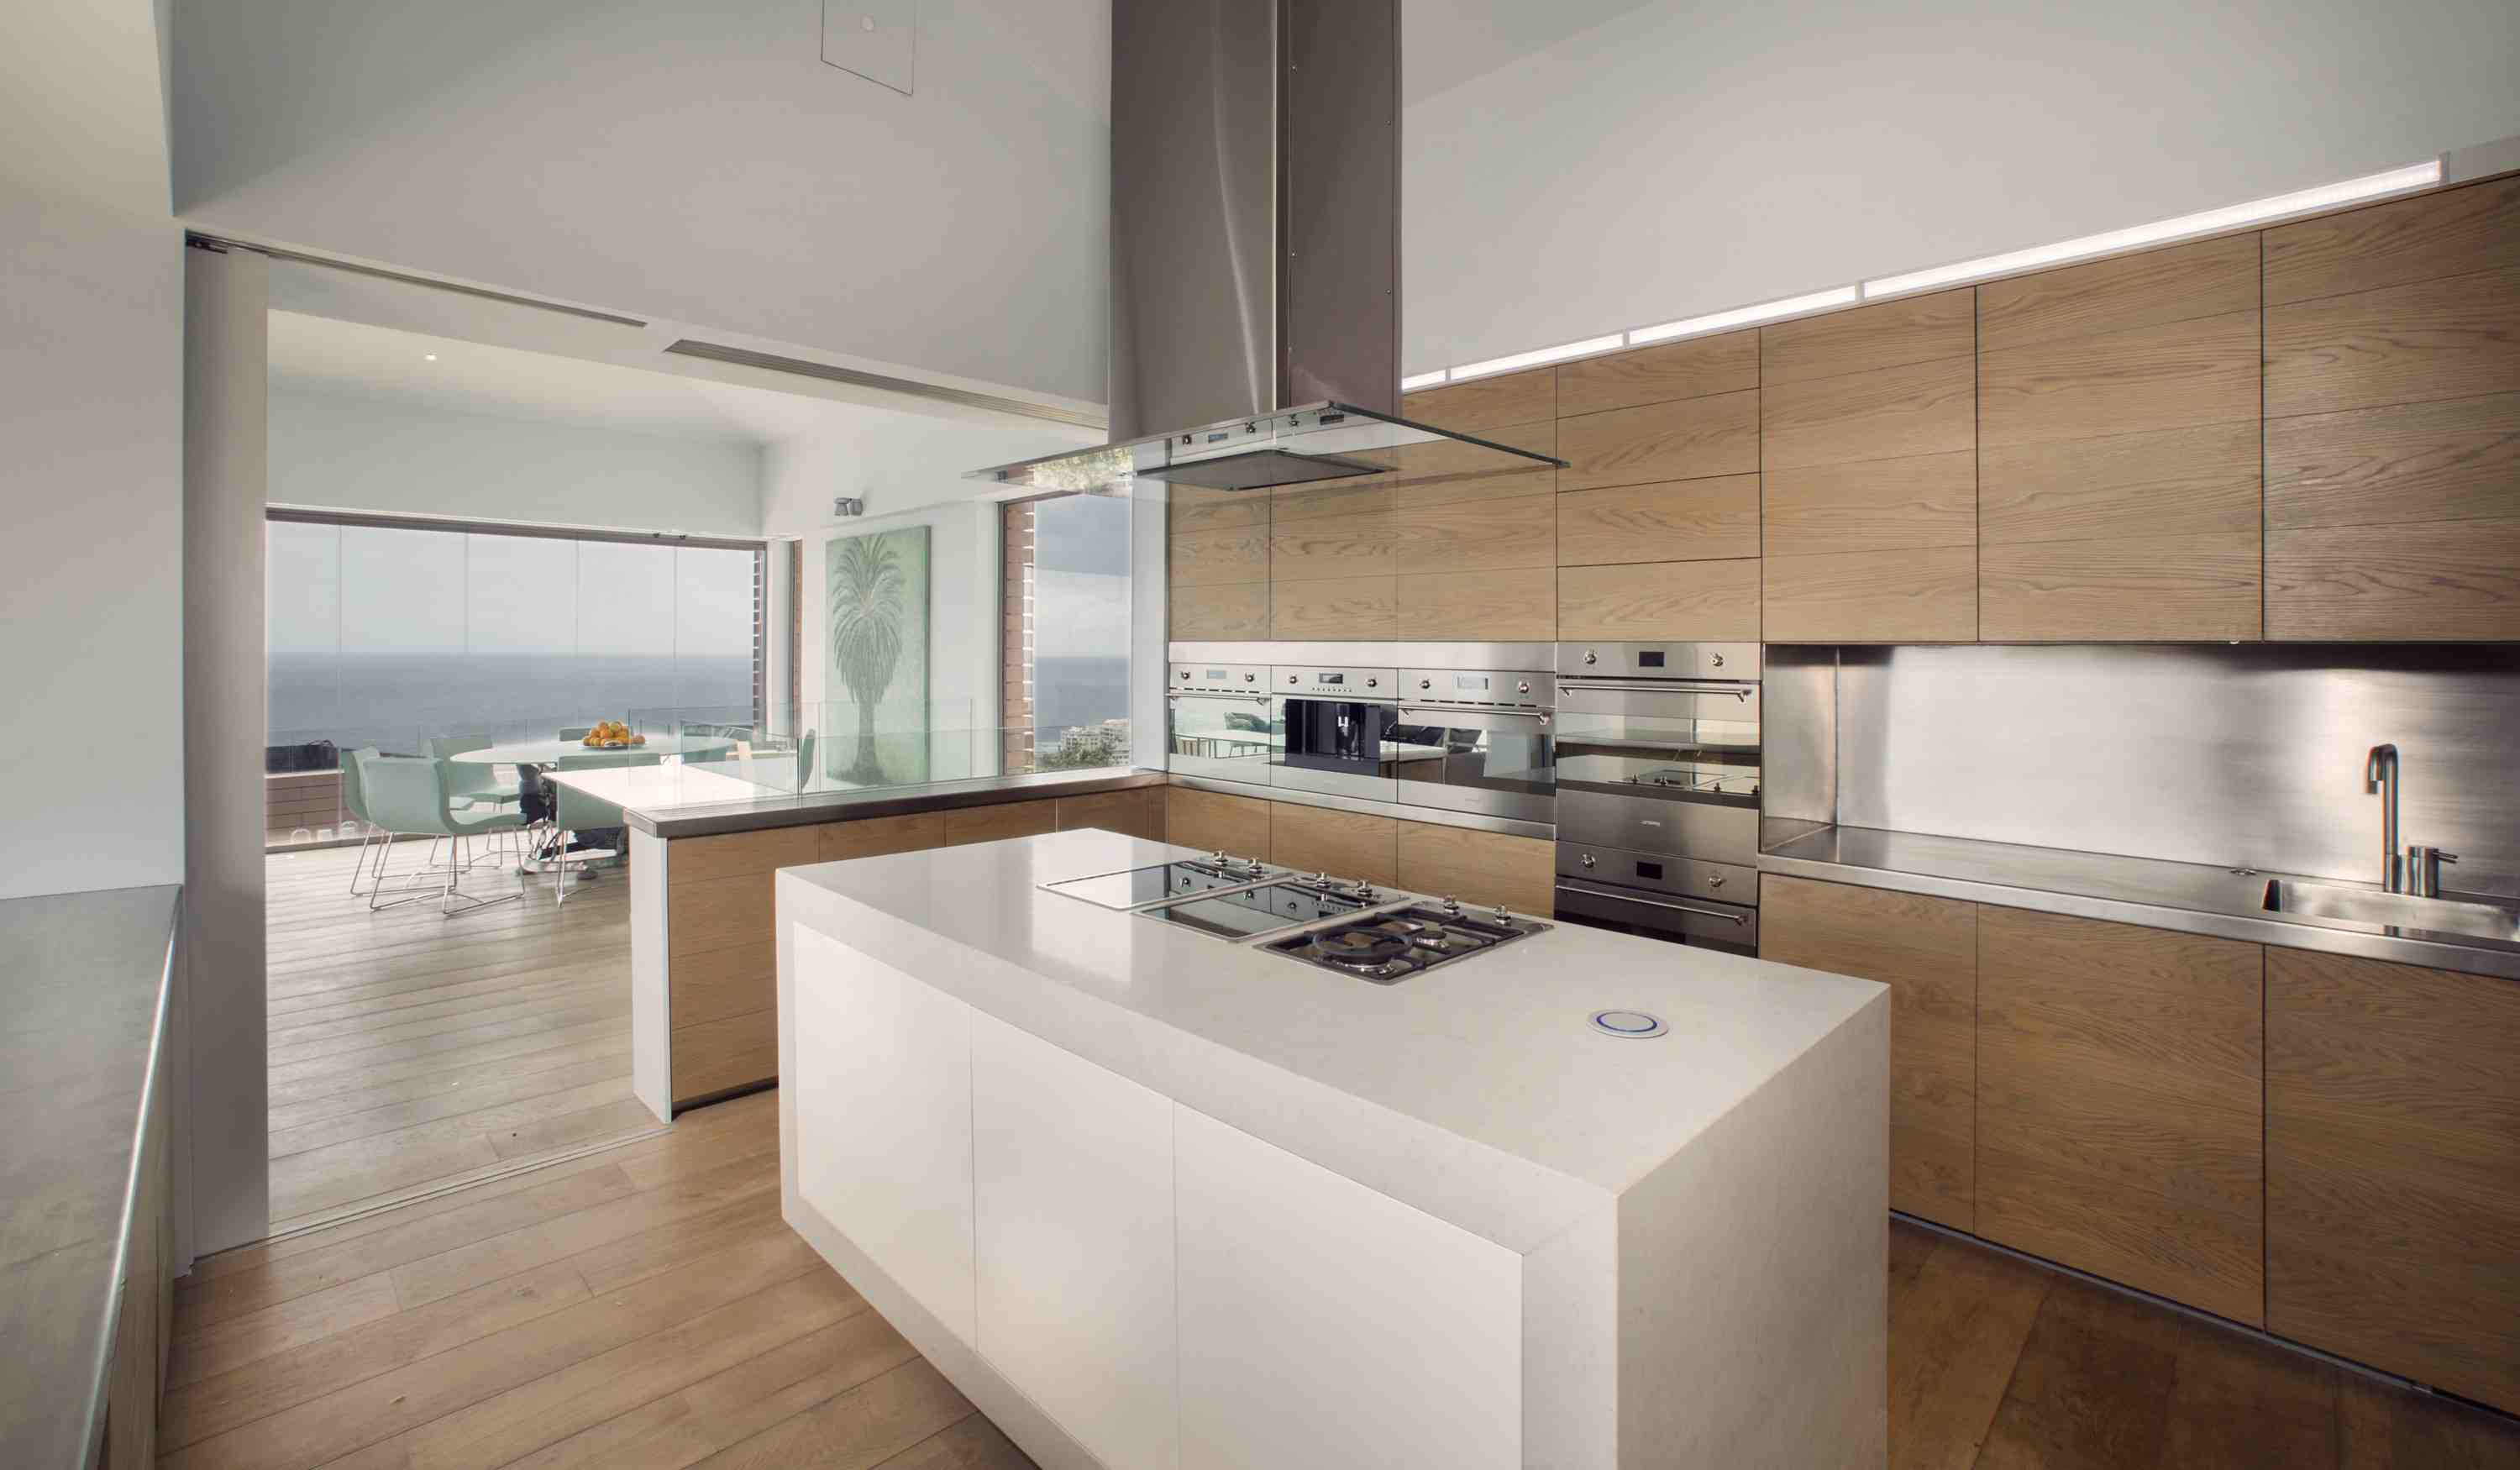 Gravity defying ultra modern architecture and for Ultra modern kitchen designs luxury